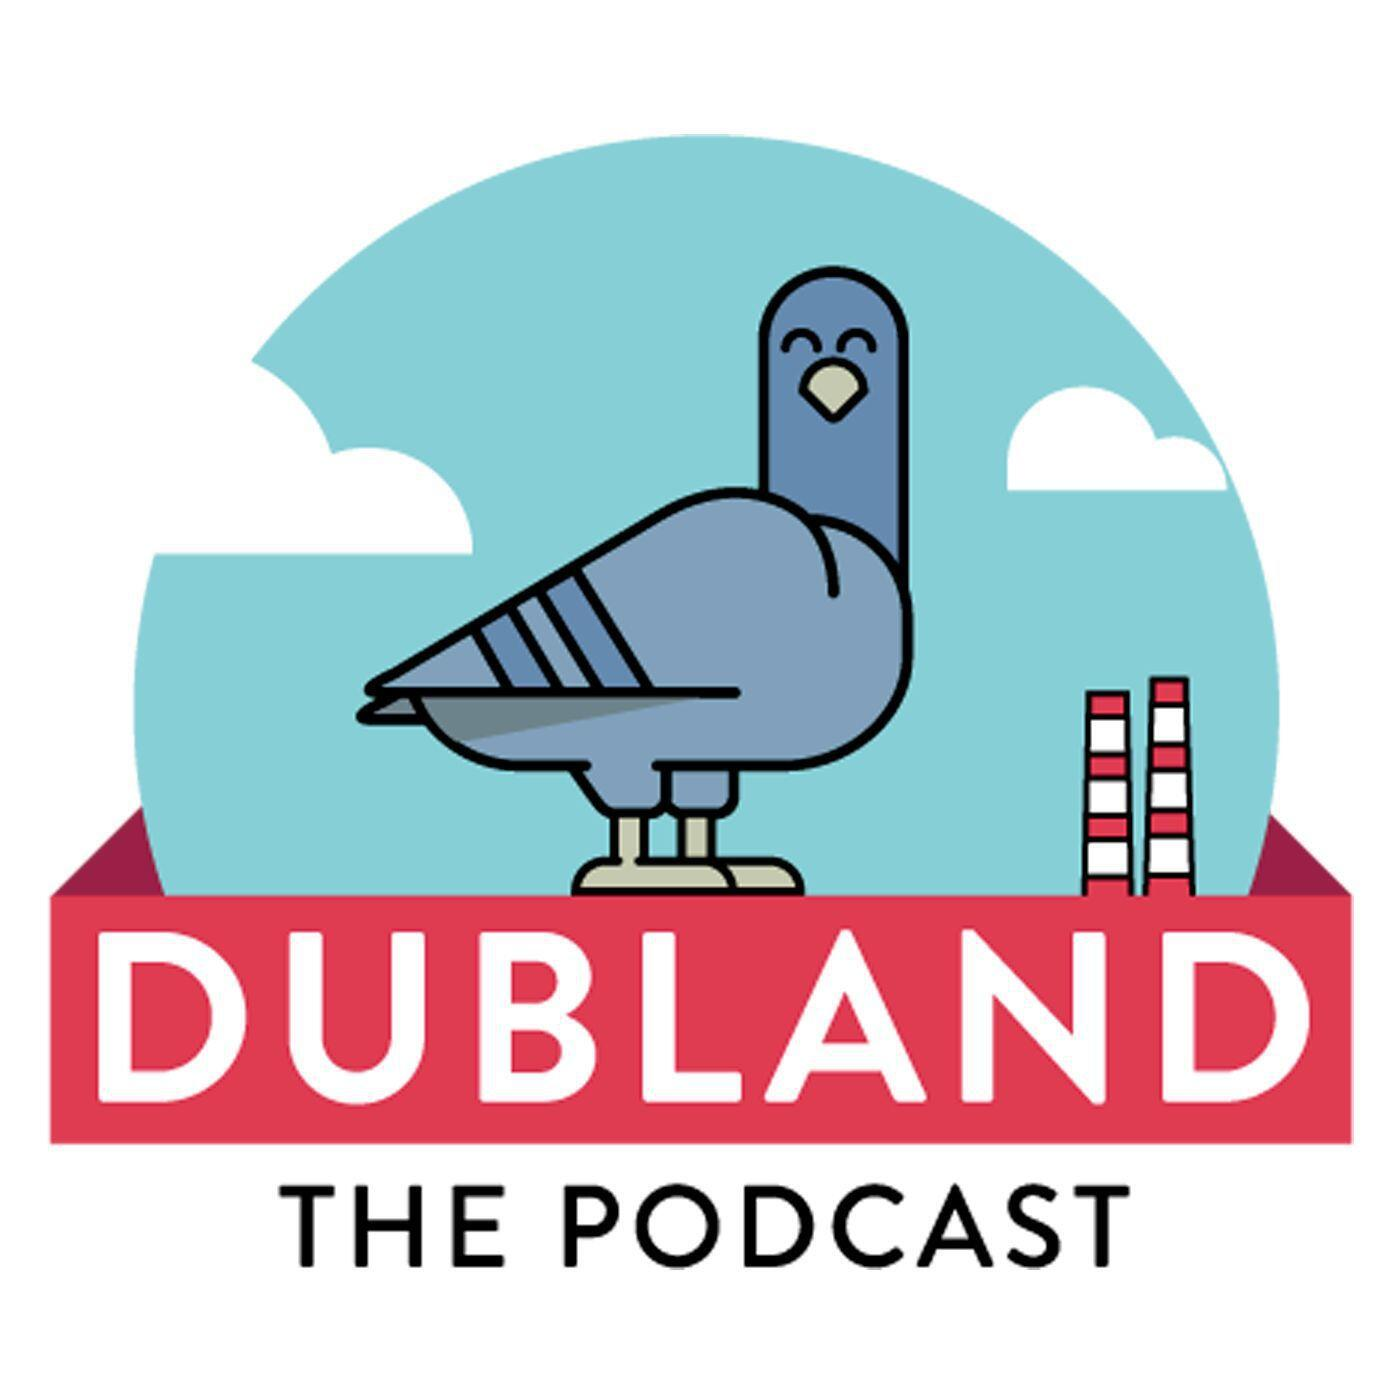 DUBLAND THE PODCAST EPI 11